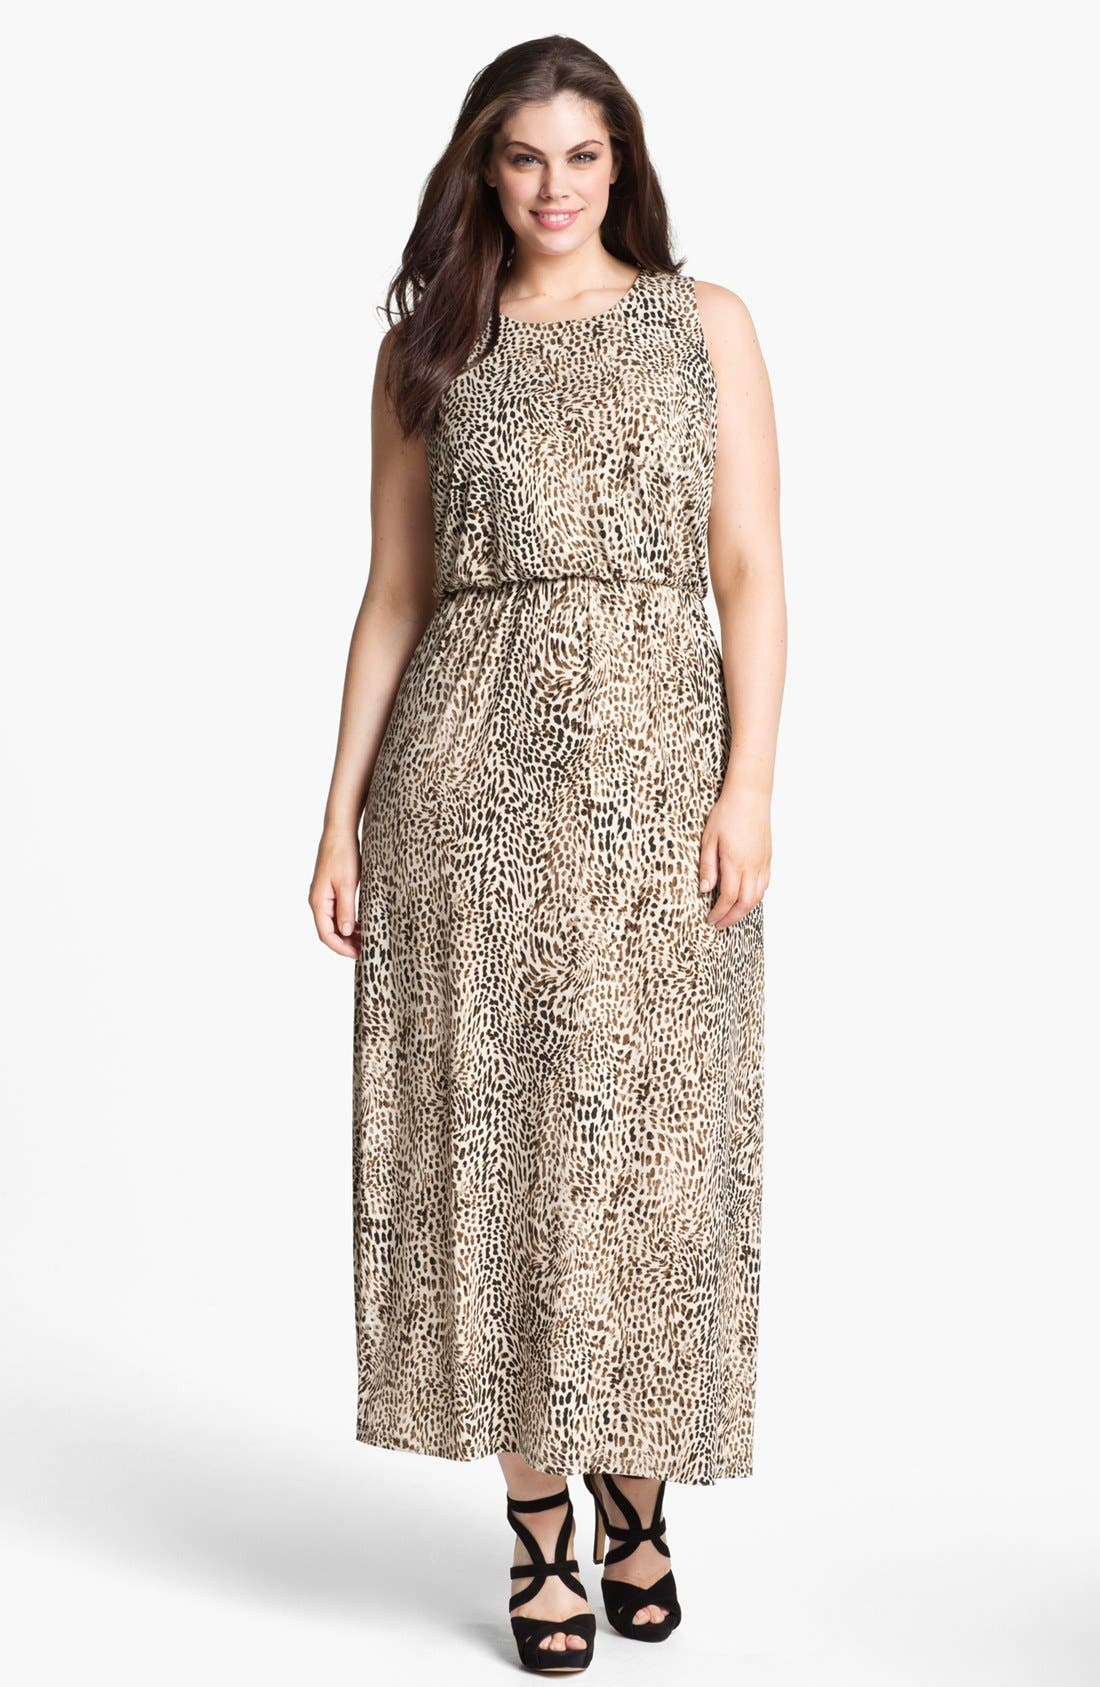 Alternate Image 1 Selected - Vince Camuto 'Rio' Cheetah Print Maxi Dress (Plus) (Online Only)